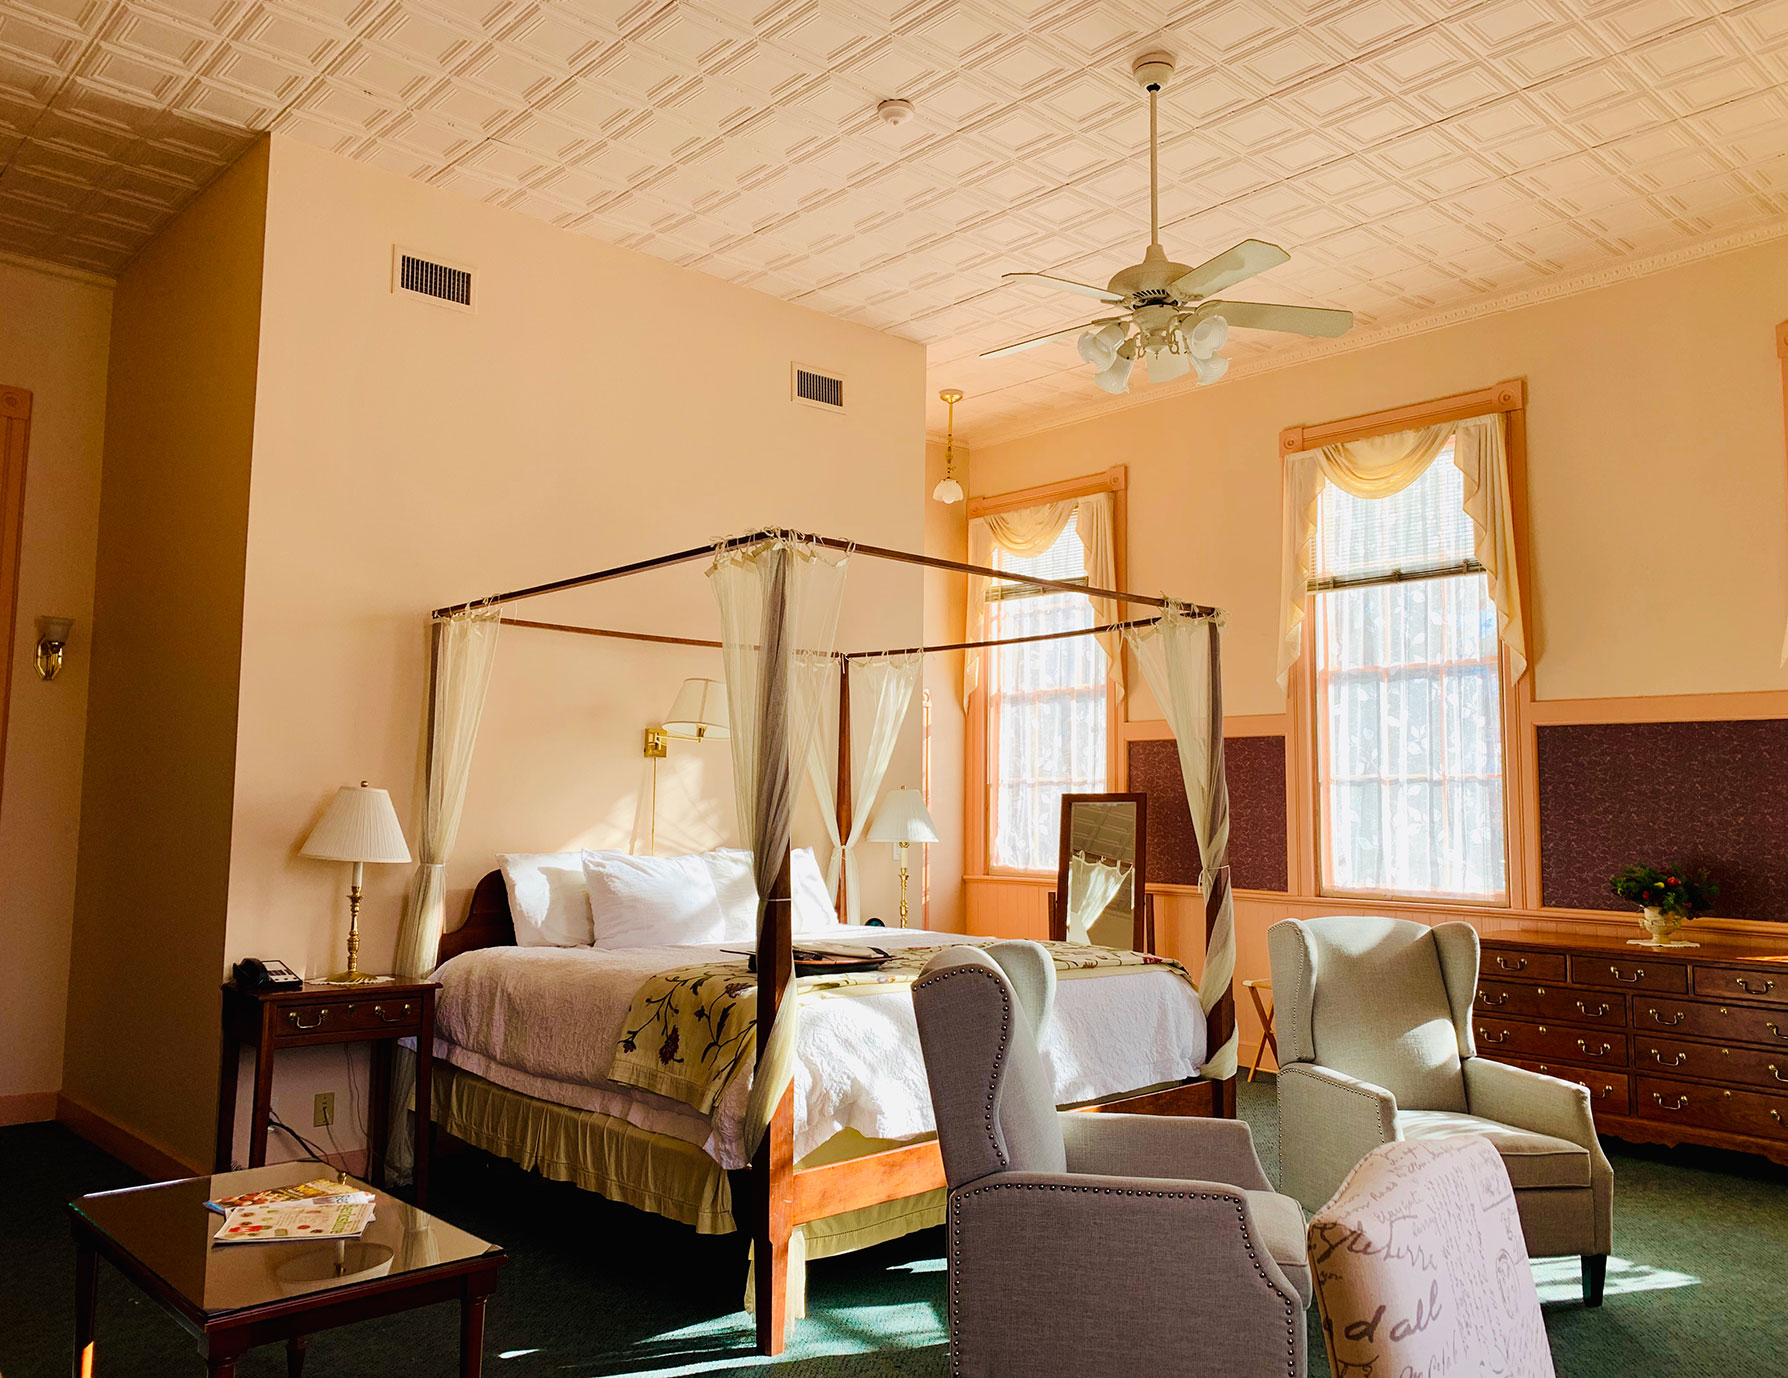 Sunny bed and chairs in the La Chambre room - Lenox Bed and Breakfast